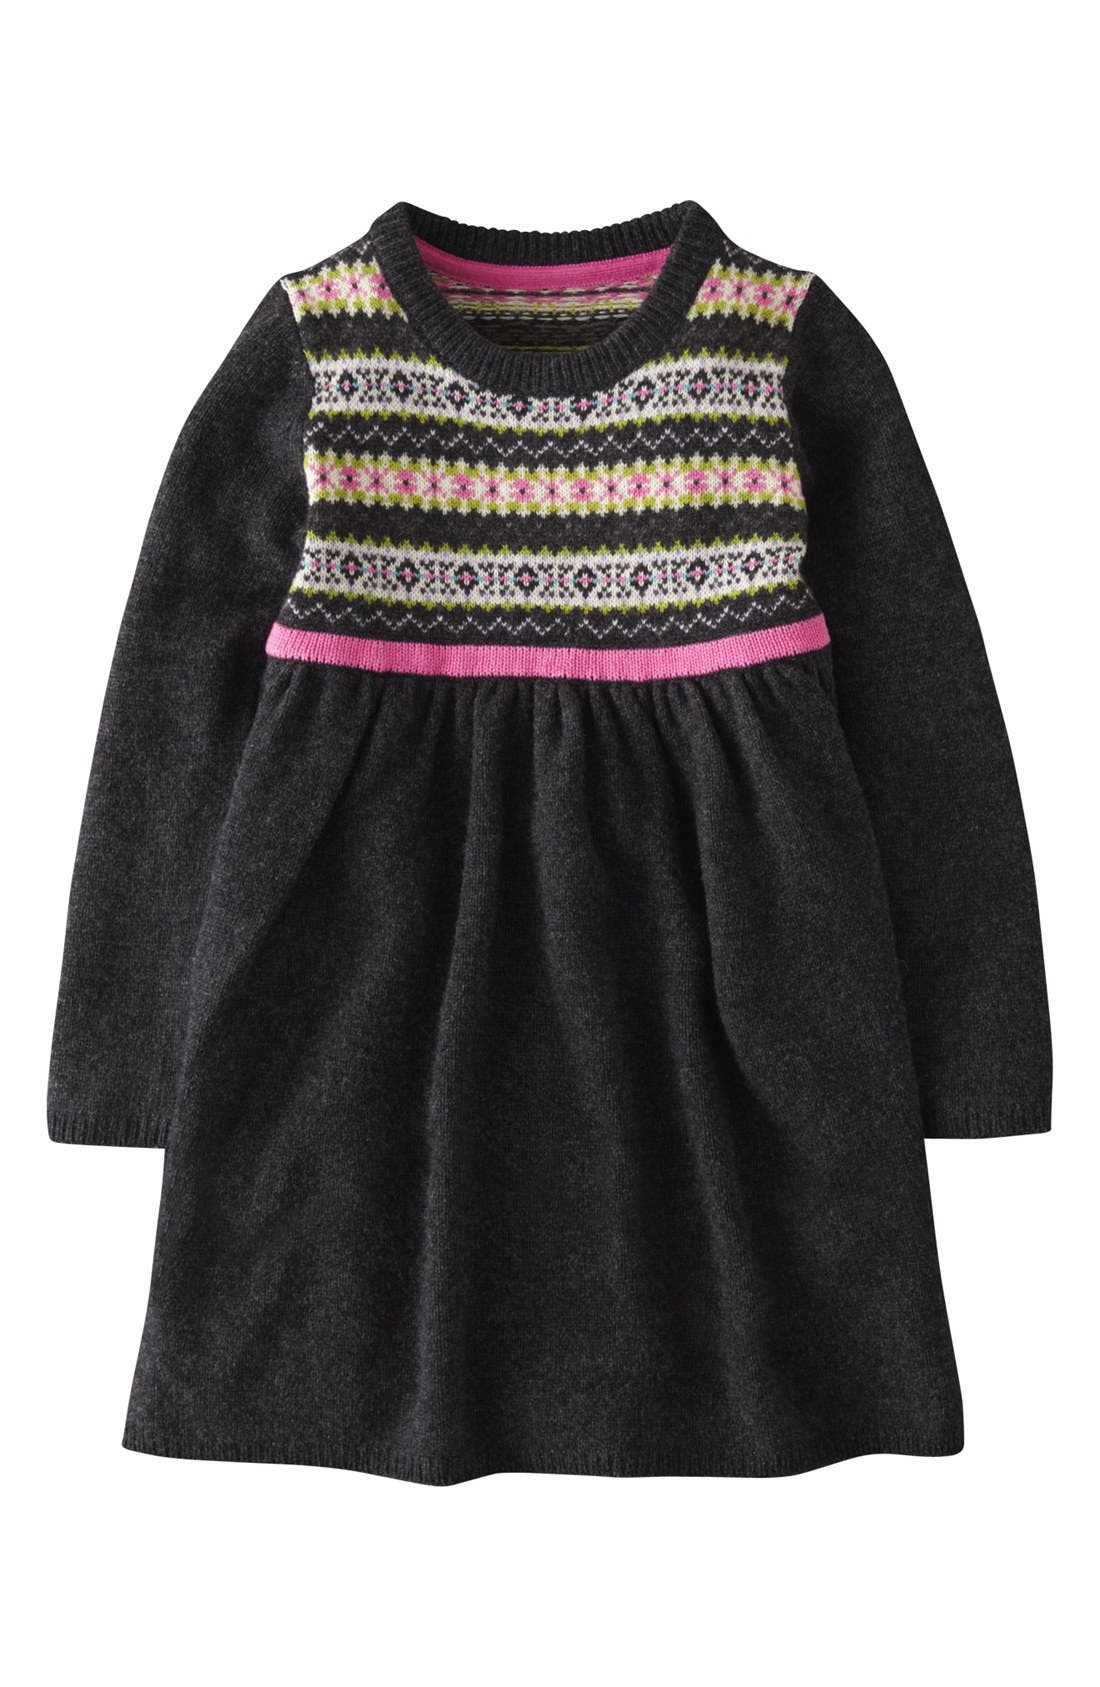 Main Image - Mini Boden Fair Isle Knit Dress (Toddler Girls)